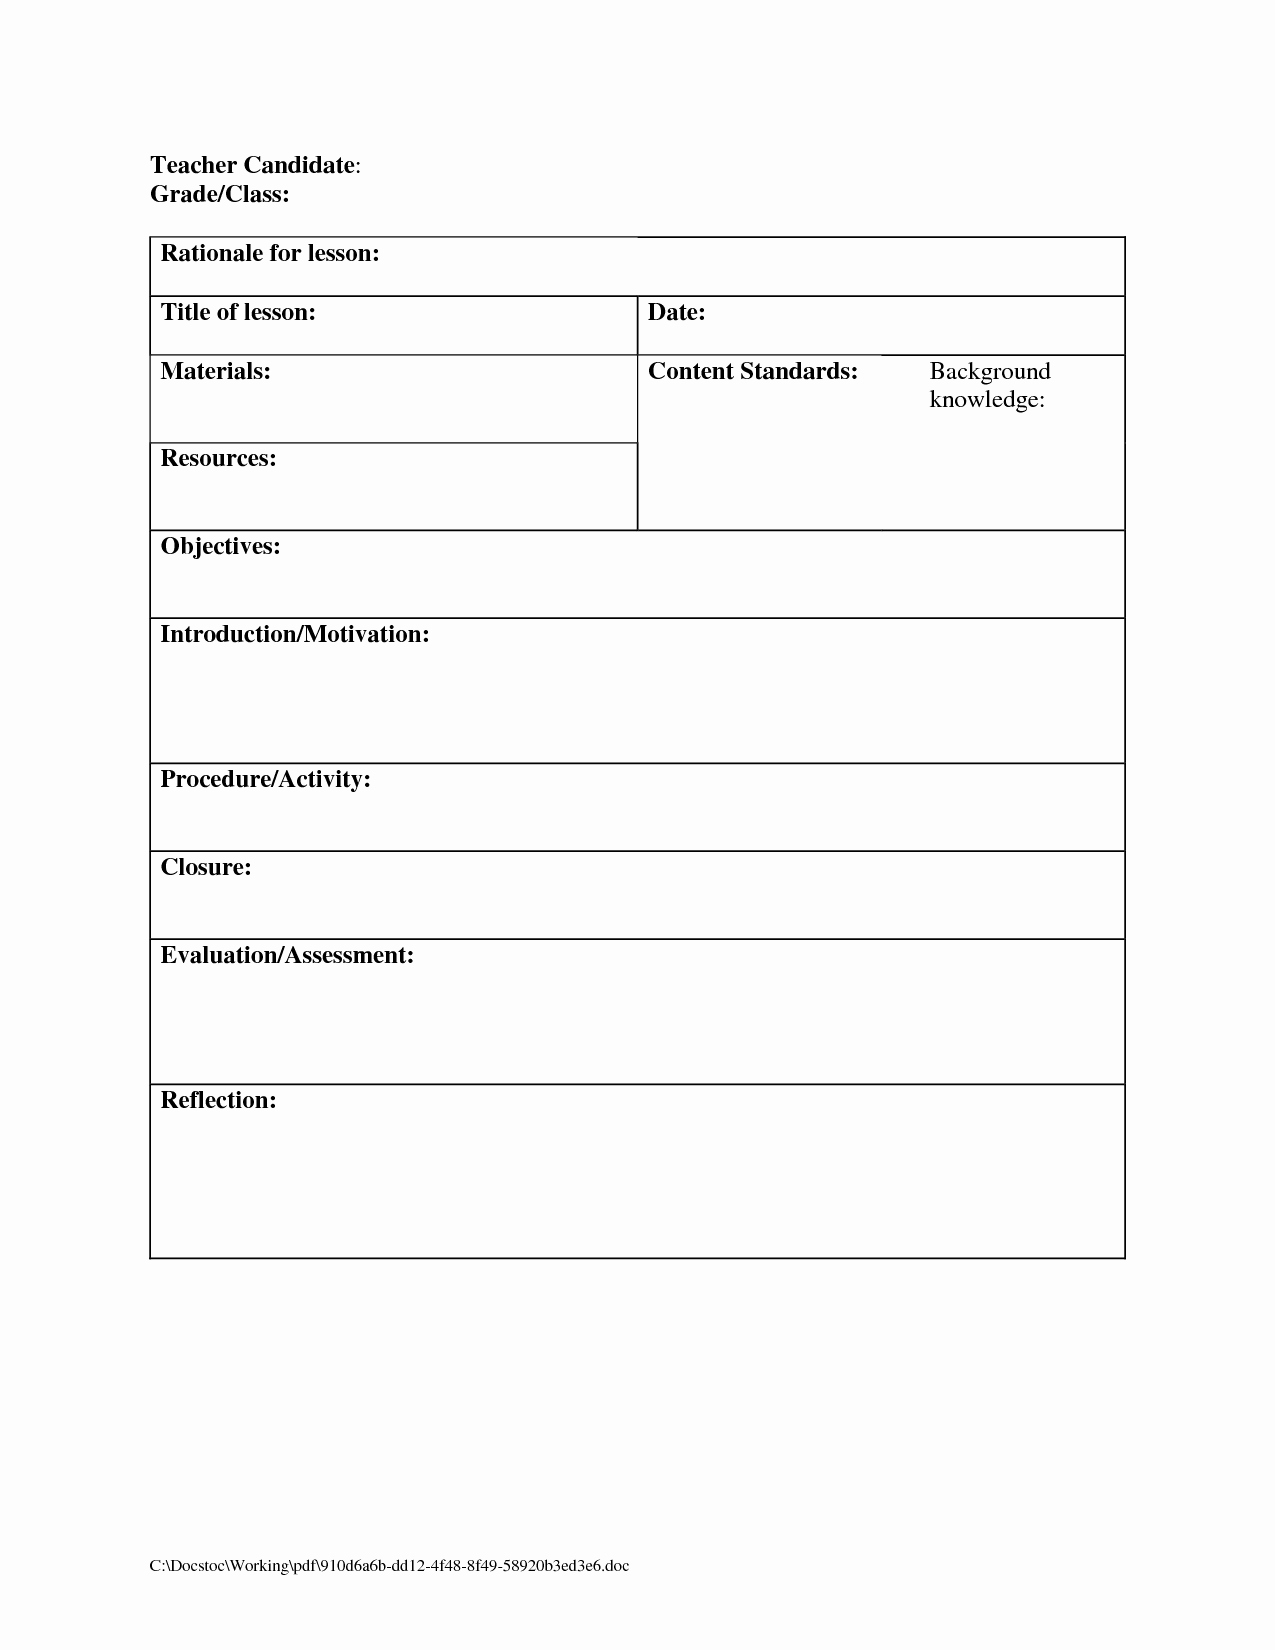 Blank Business Plan Template Word Inspirational Printable Blank Lesson Plans form for Counselors